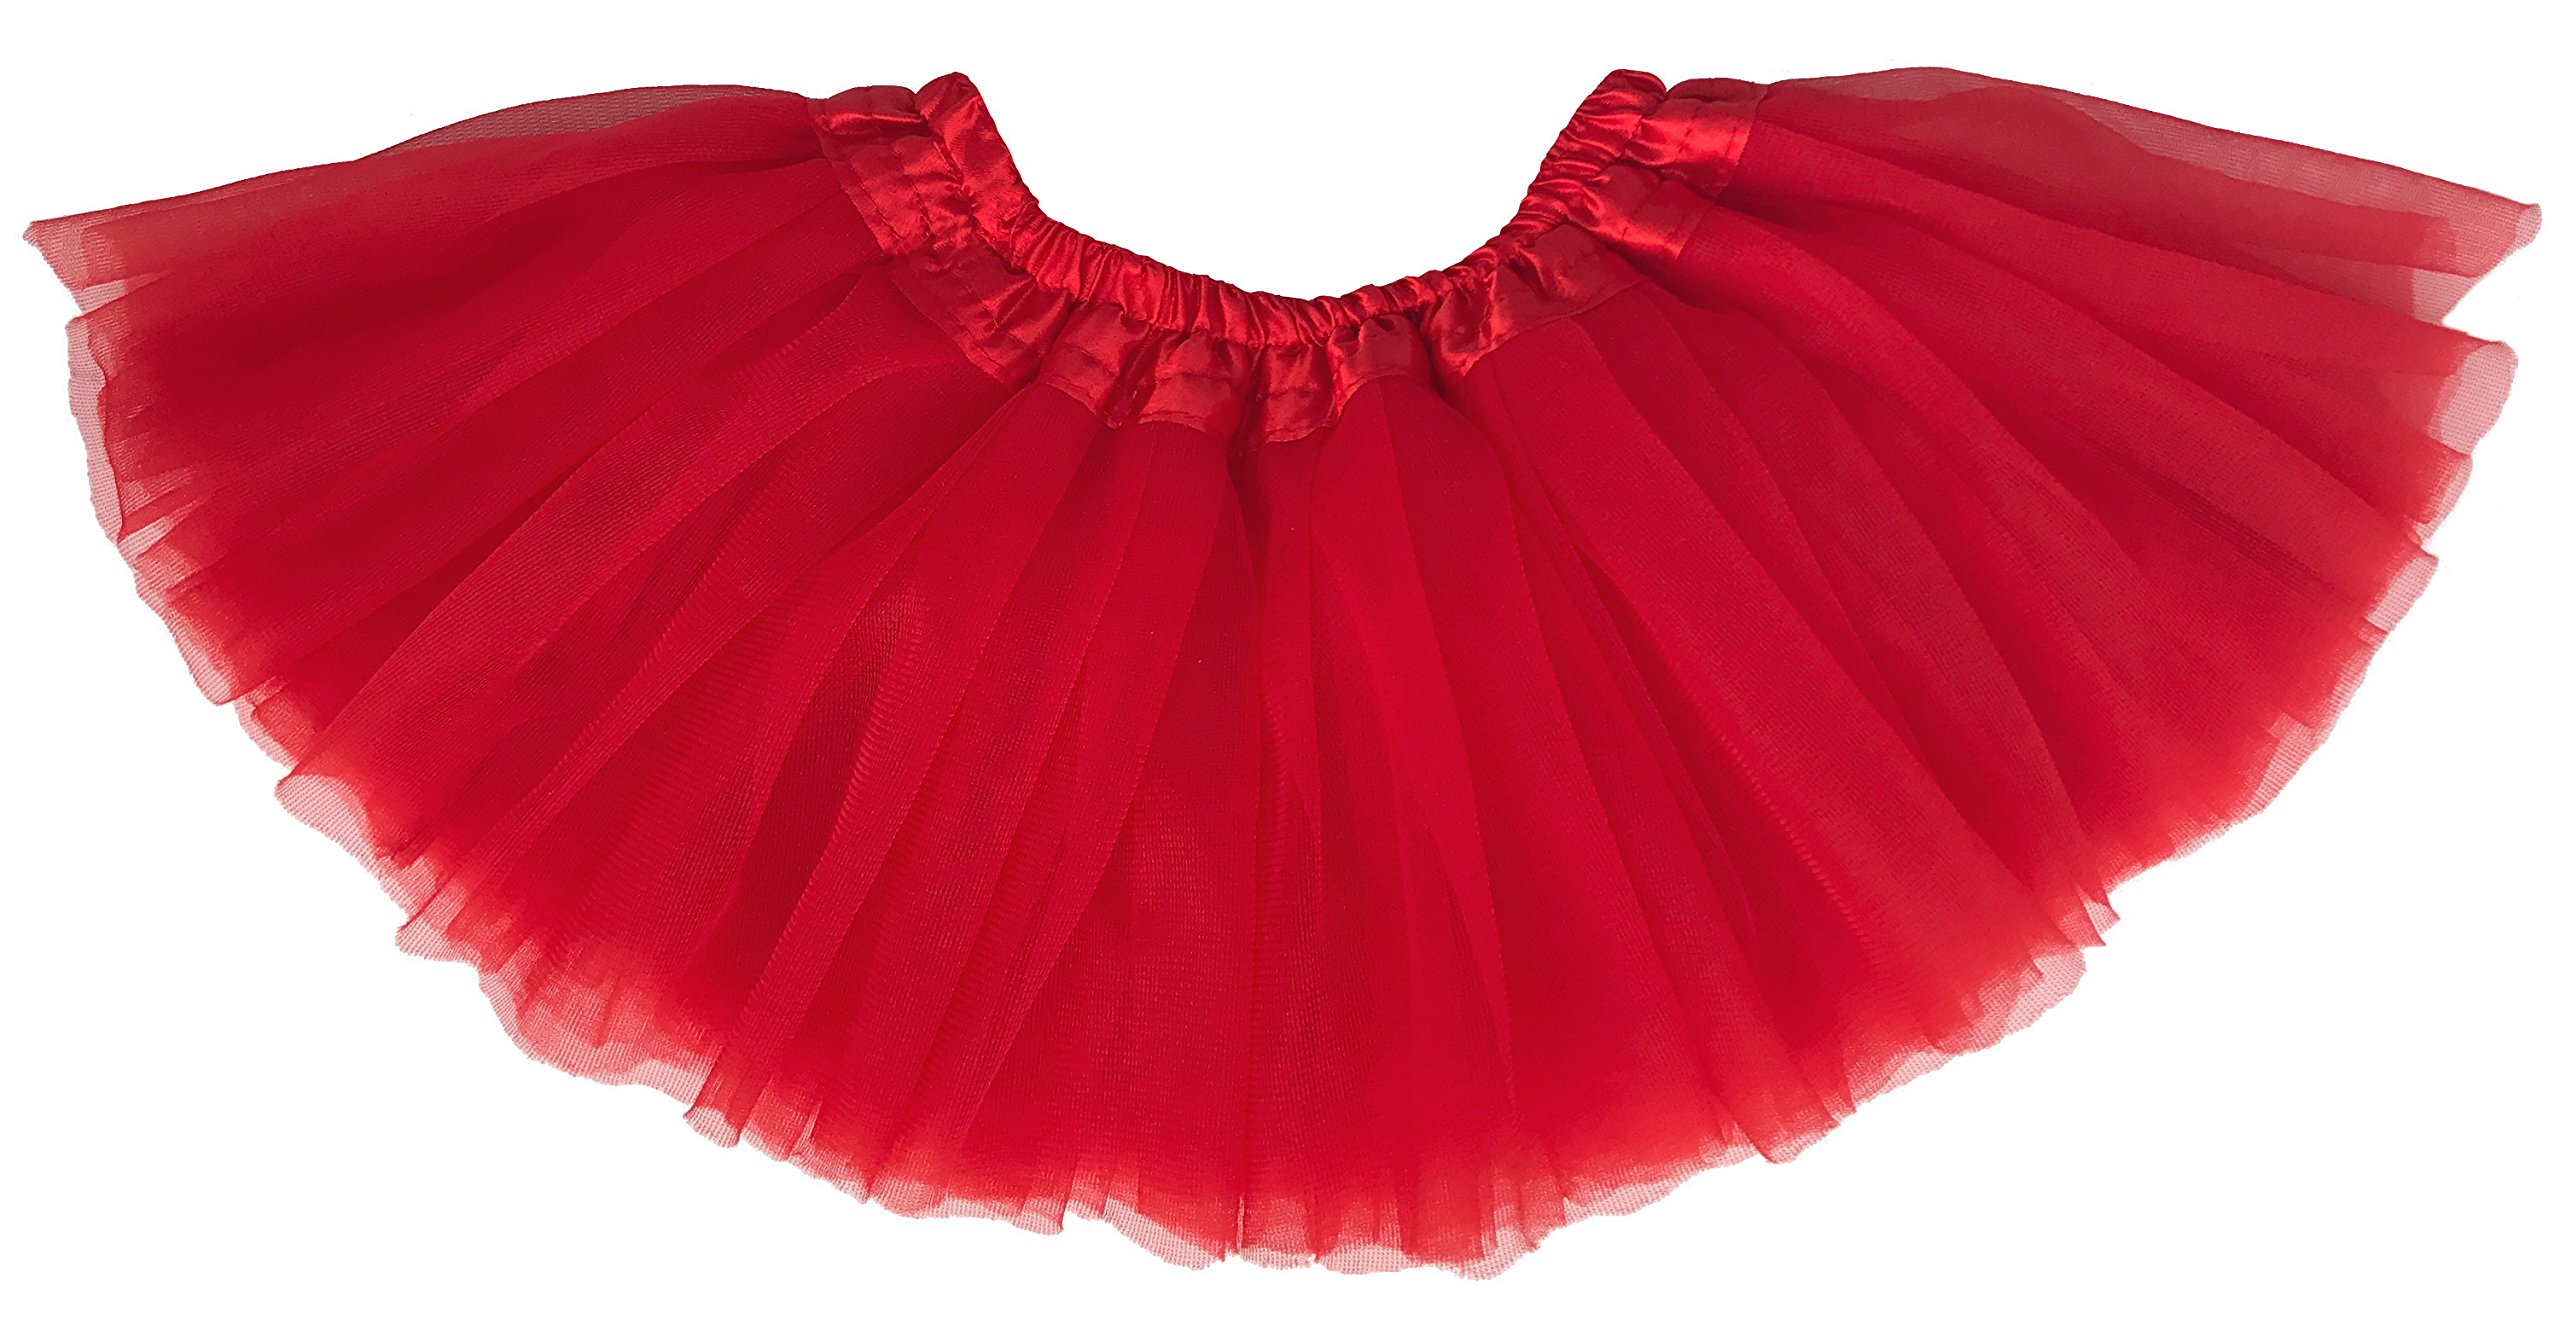 Dancina Baby Tutu Smash Cake Outfit for Girls 6-24 Months Cardinal Red by Dancina